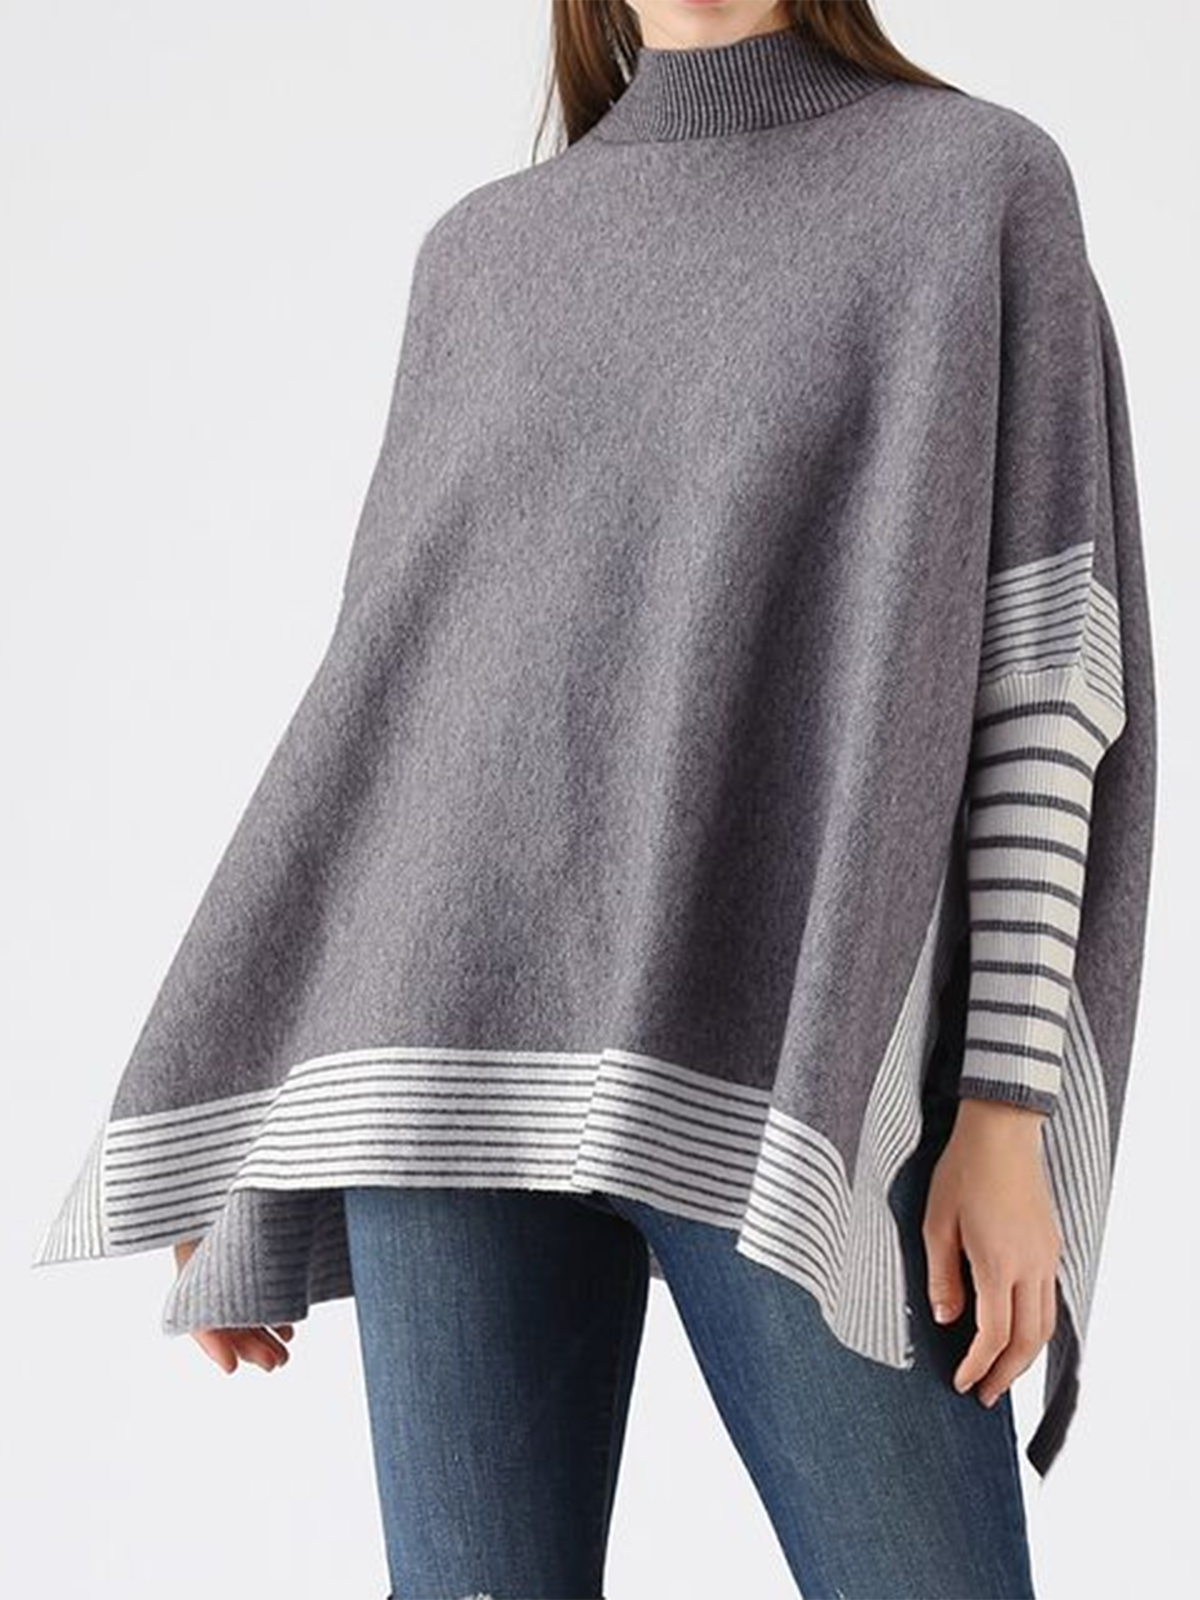 High Neck Cape Style Stripes Color Block Long Sleeve Knitted Sweater